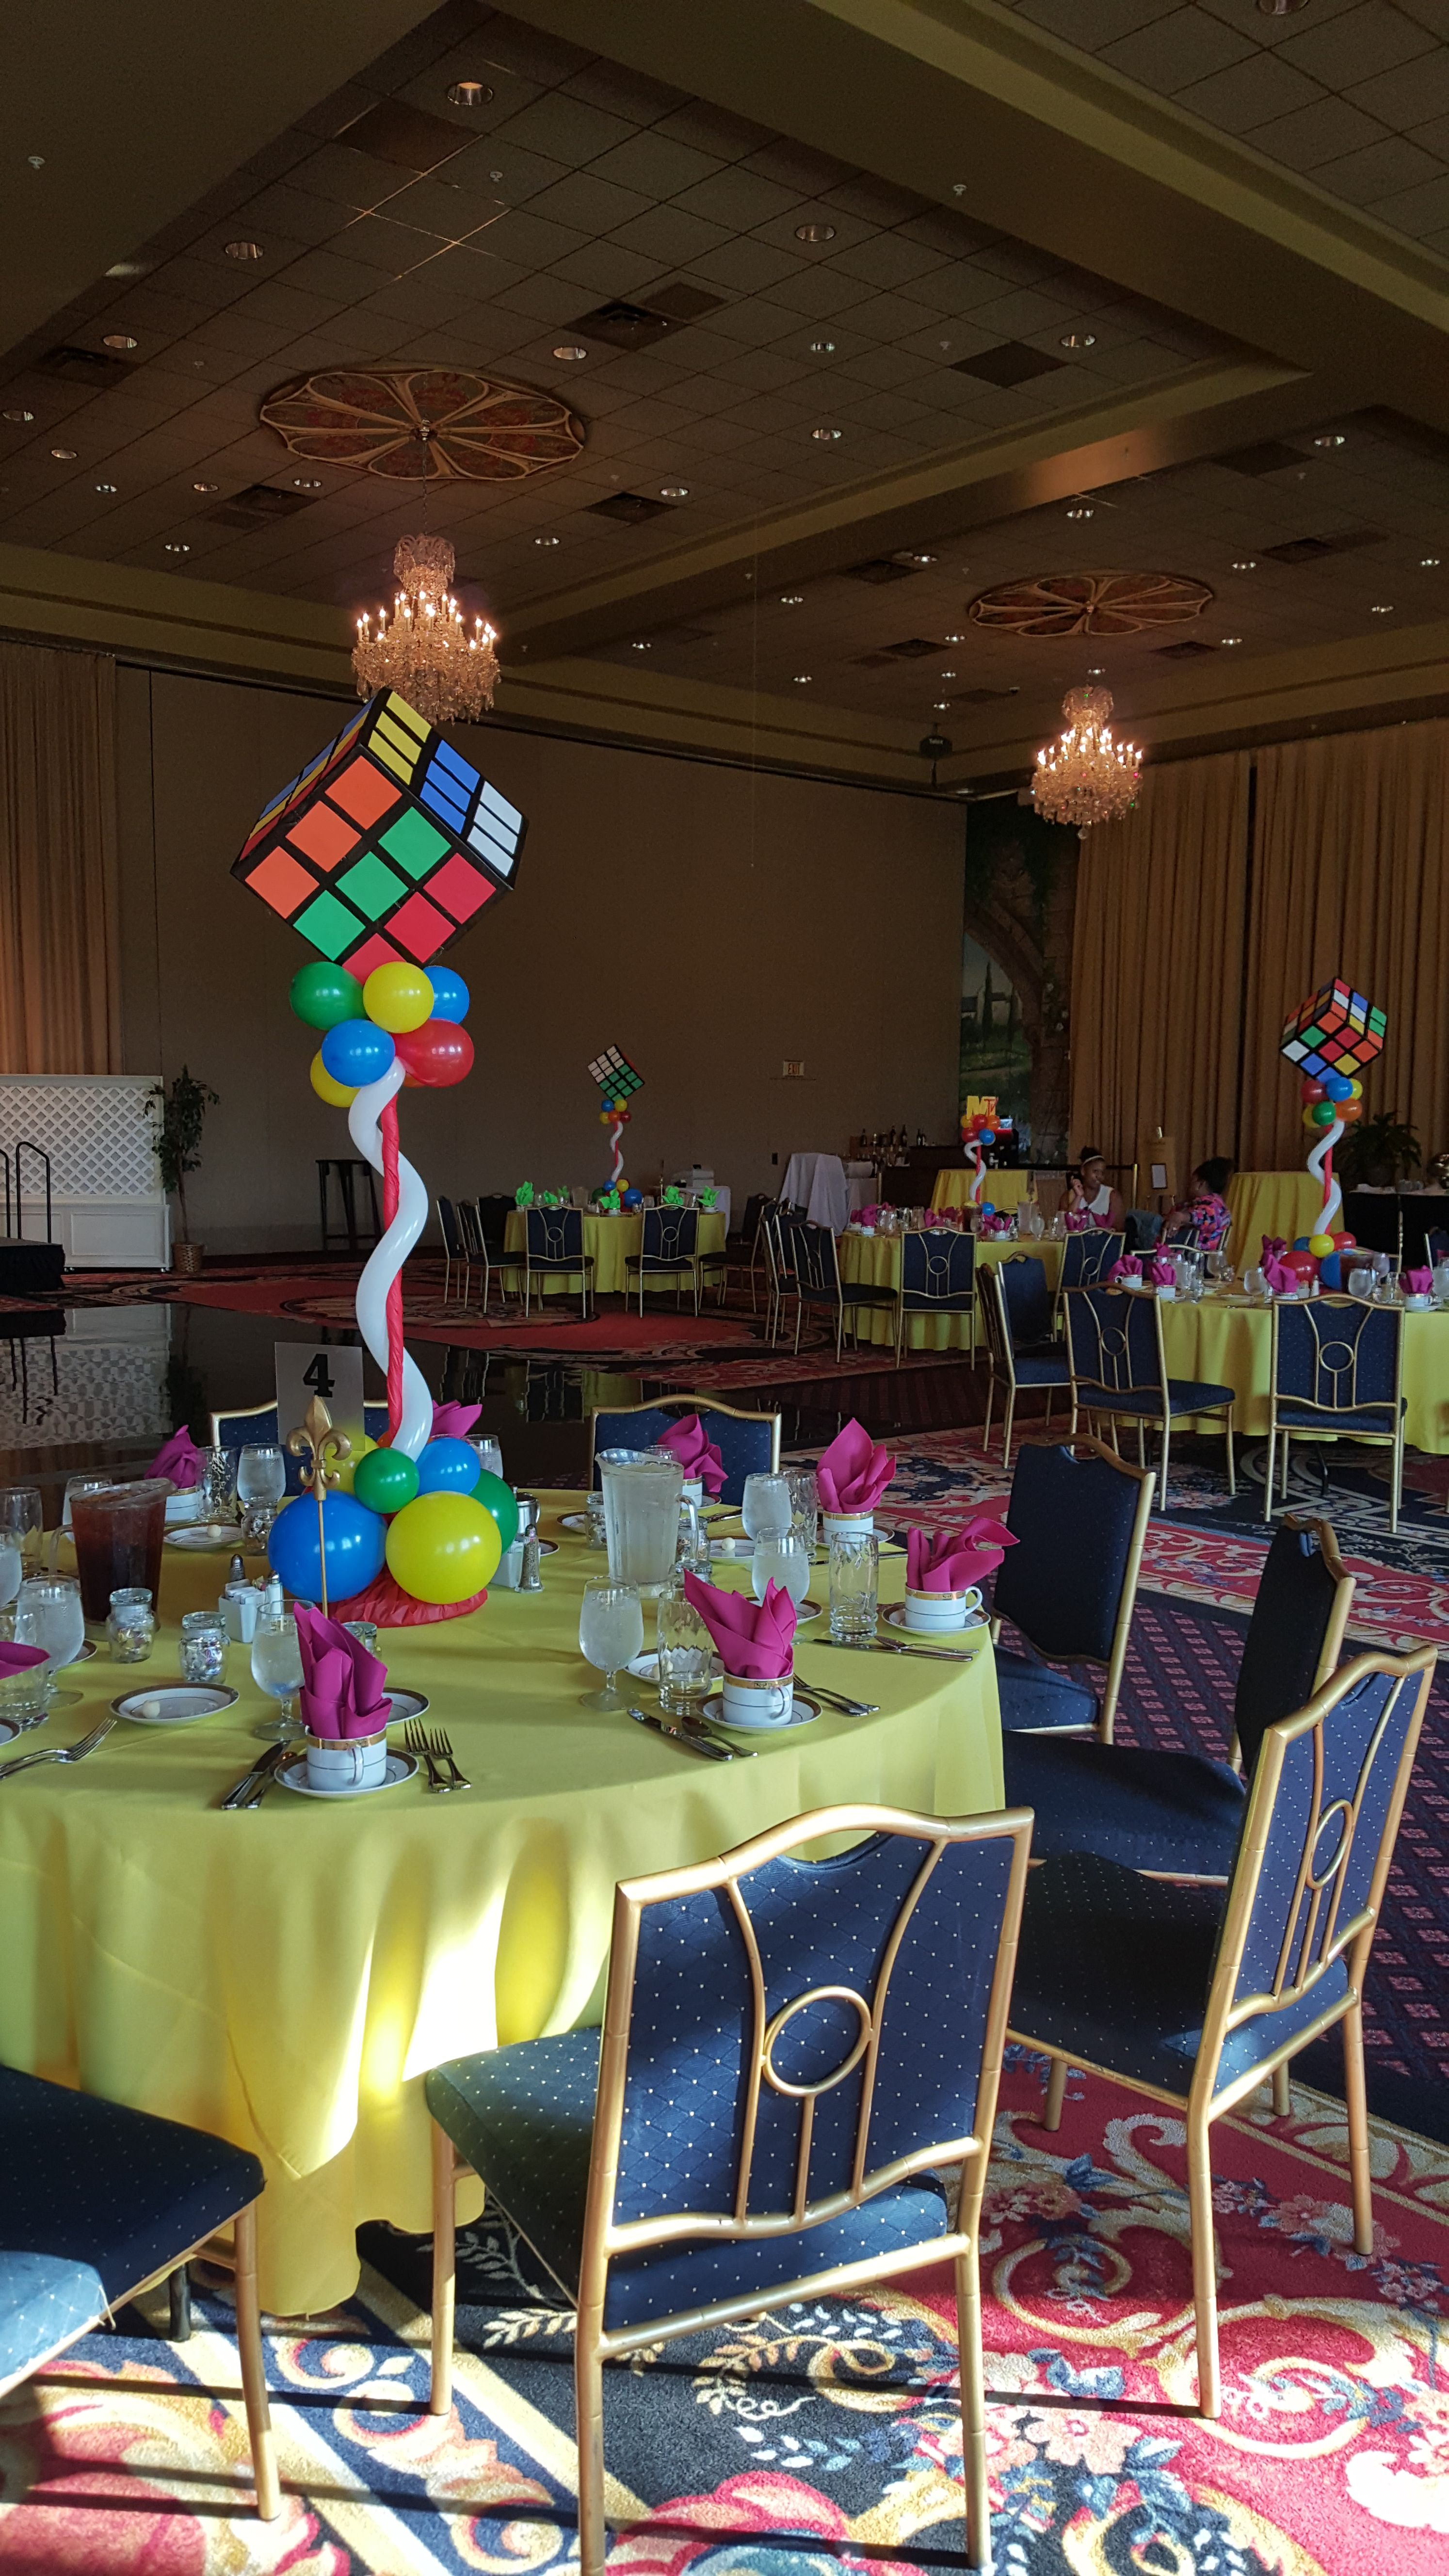 80's Theme Balloon Centerpieces with Jumbo Rubik's Cube by